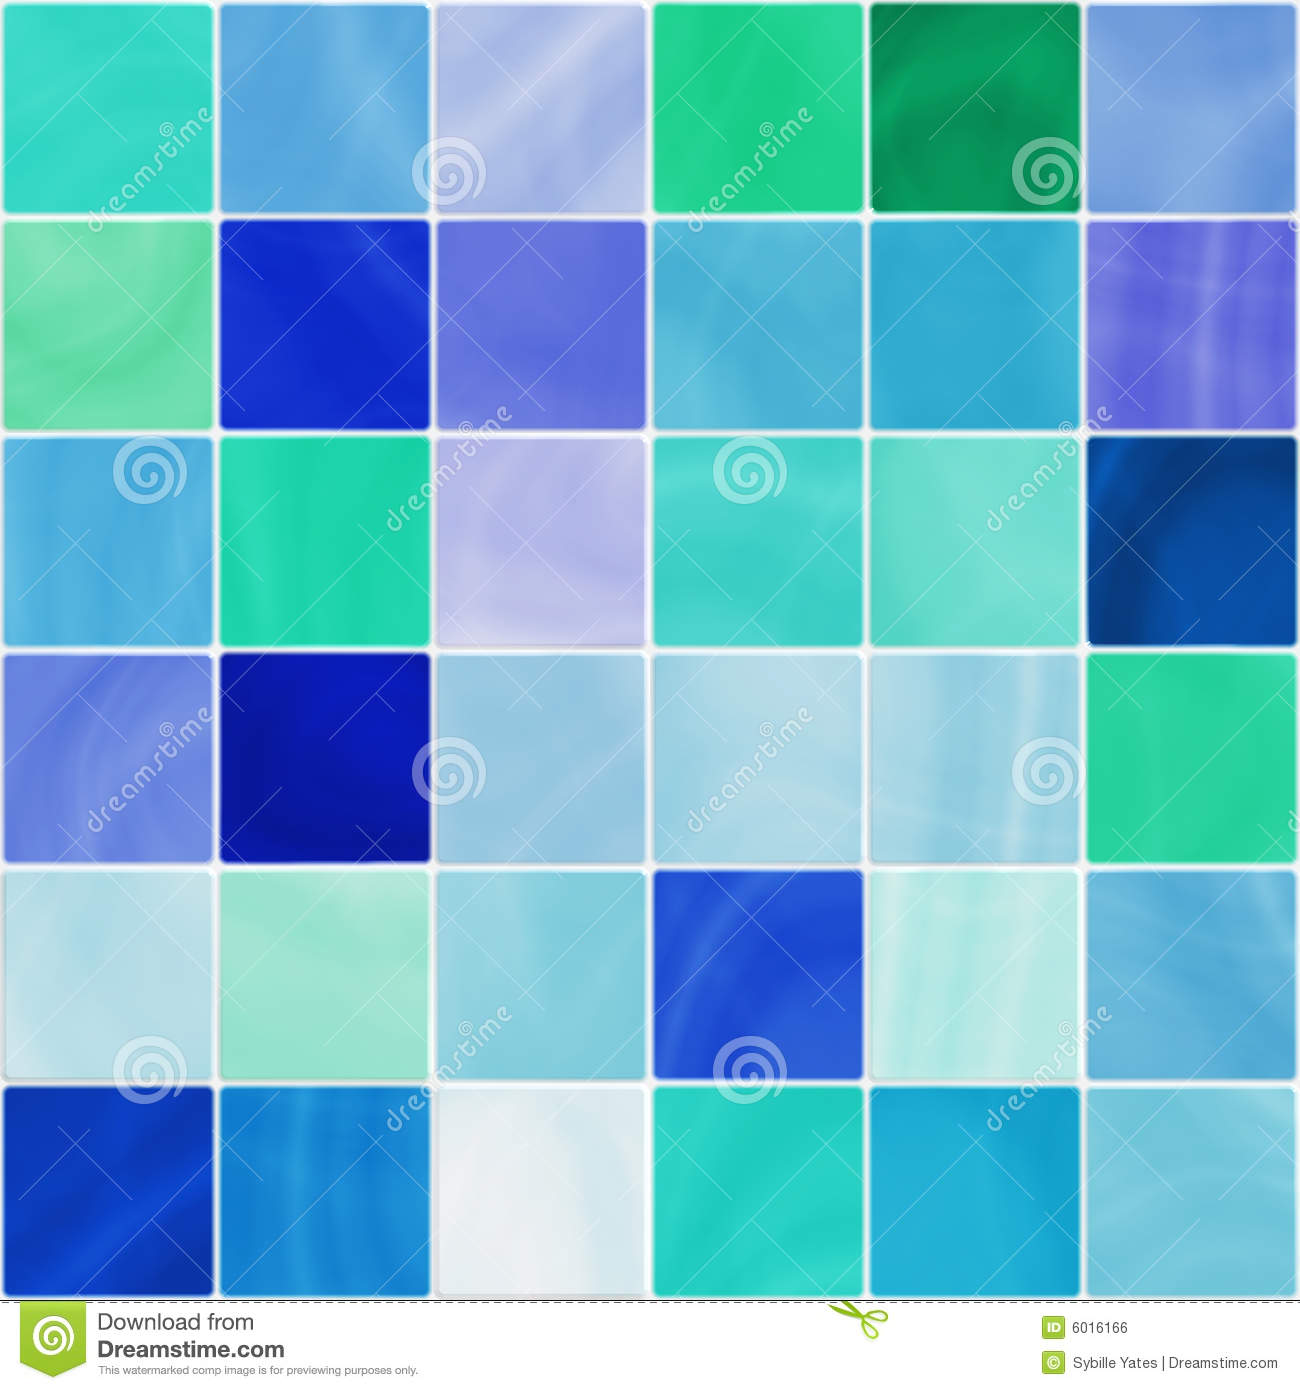 Azulejos Baño Azules:Blue and Green Bathroom Tiles